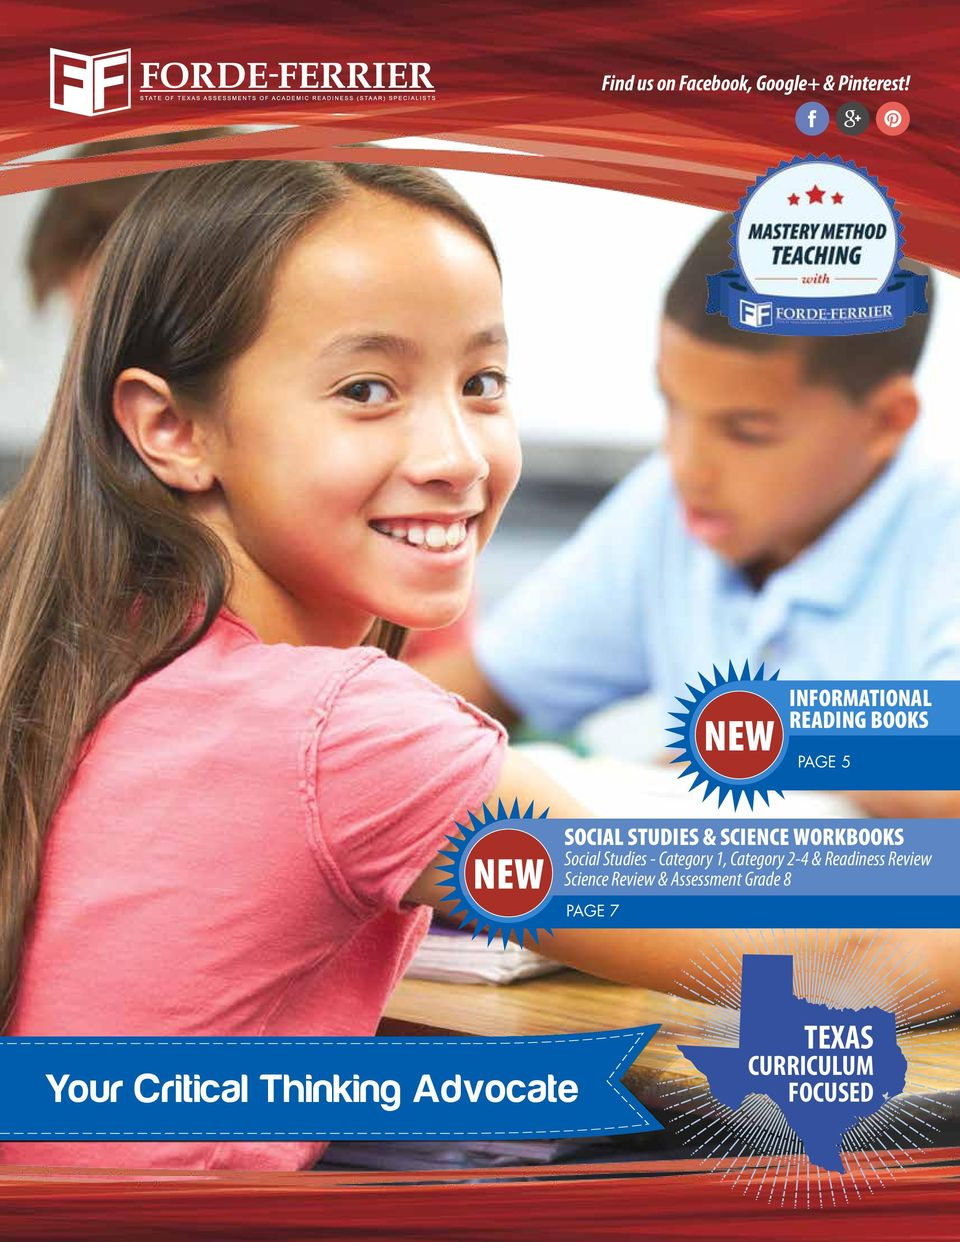 NEW INFORMATIONAL READING S PAGE 5 NEW SOCIAL STUDIES & SCIENCE WORKS Social Studies